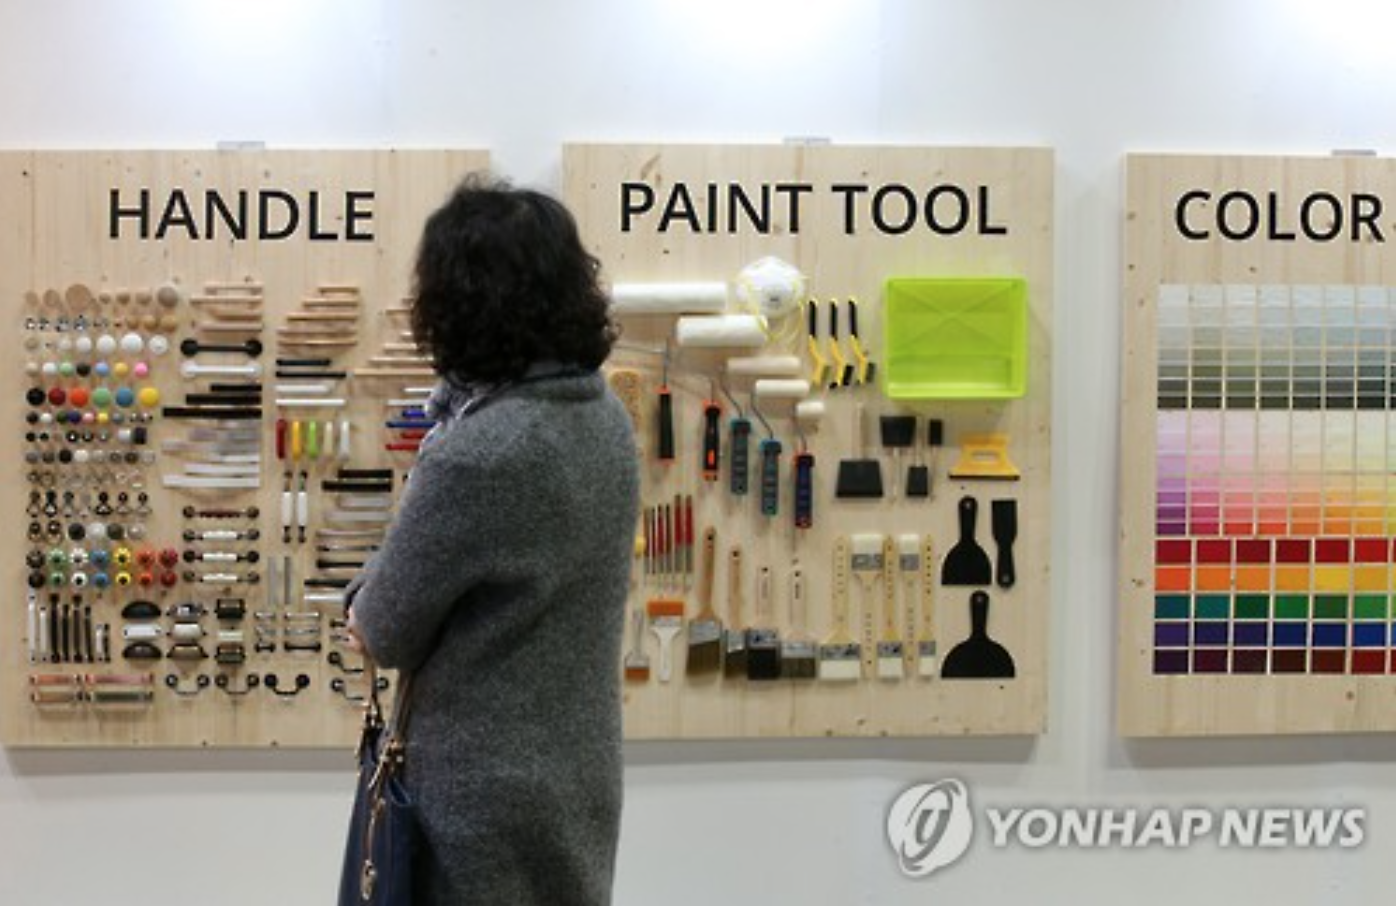 Diy Interior Design Tools At The Reform Show Hosted Coex In 2016